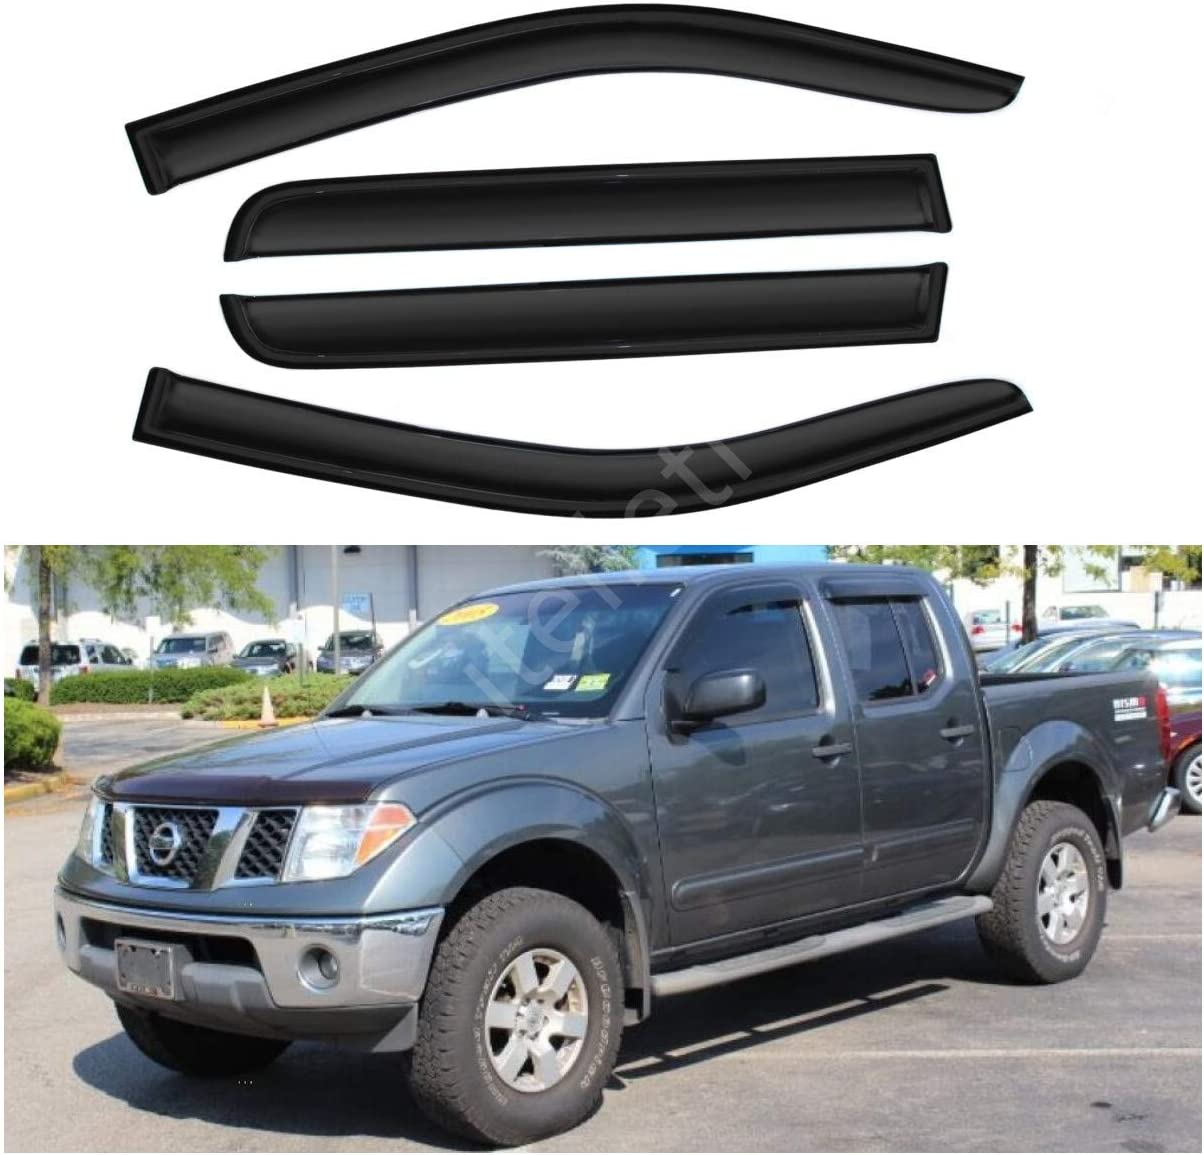 Window Visor Rain Guard Trim Fit For 2005-2018 Nissan Frontier Crew Cab Pickup